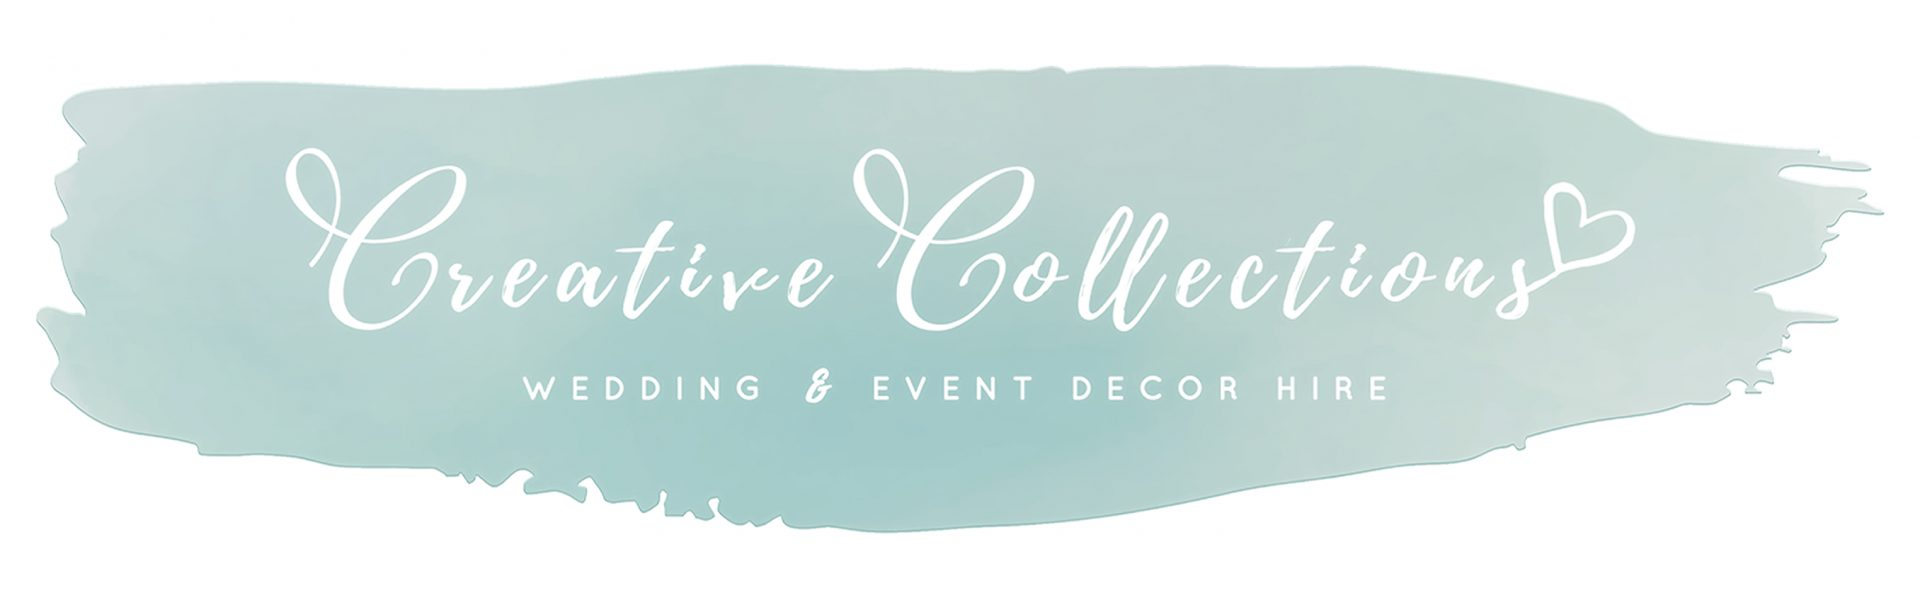 South West – Wedding & Events Decor Hire